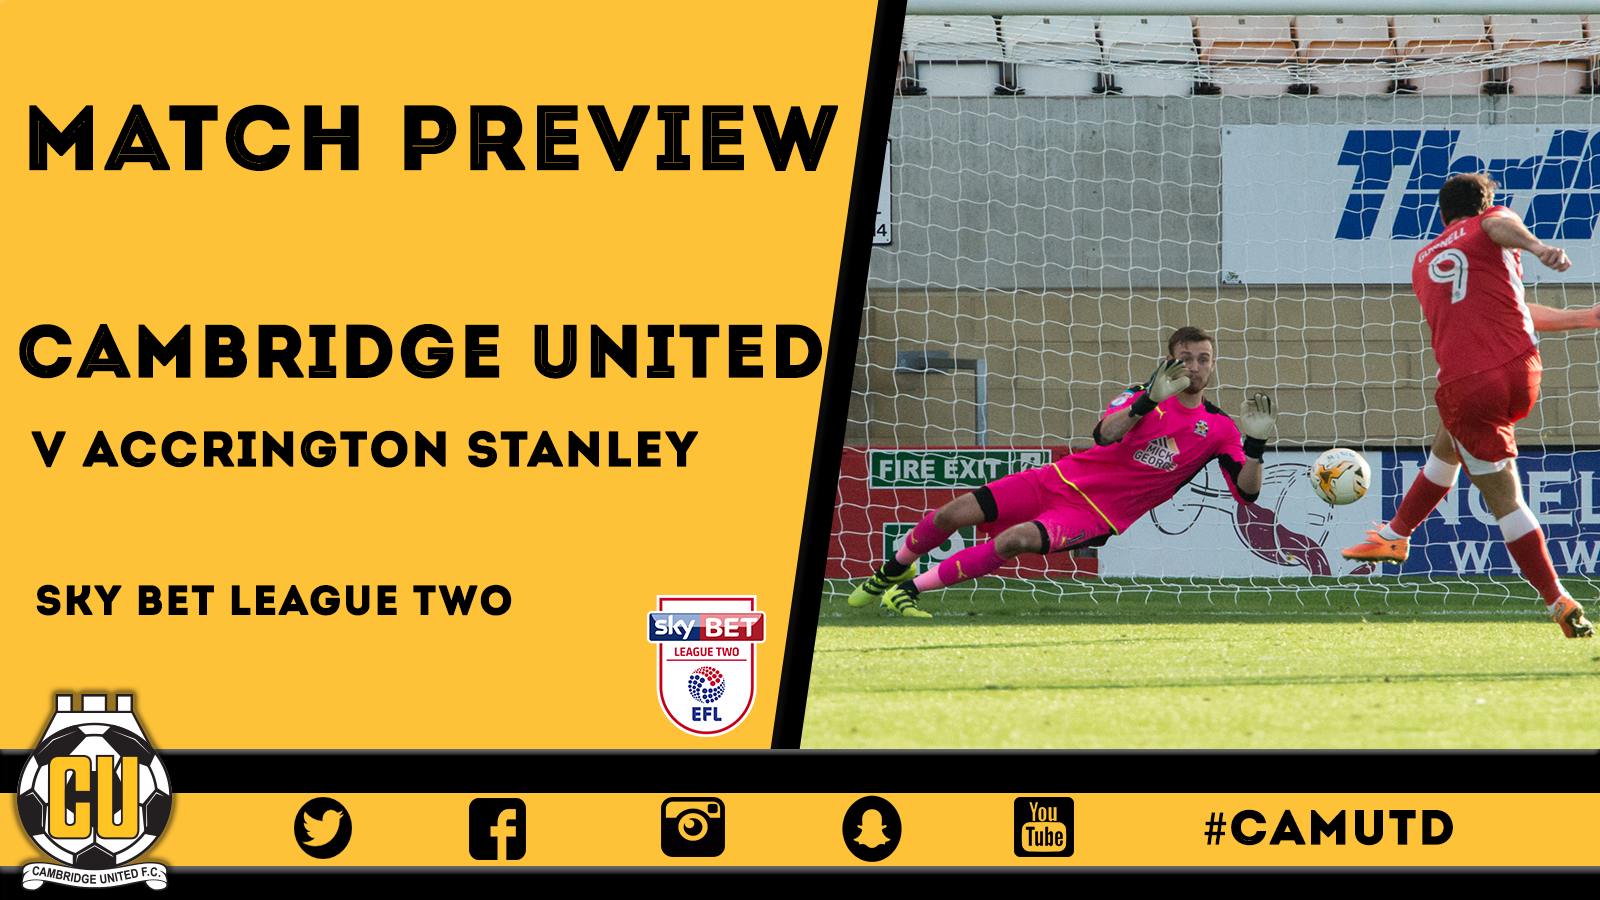 MATCH PREVIEW | ACCRINGTON STANLEY - News - Cambridge United